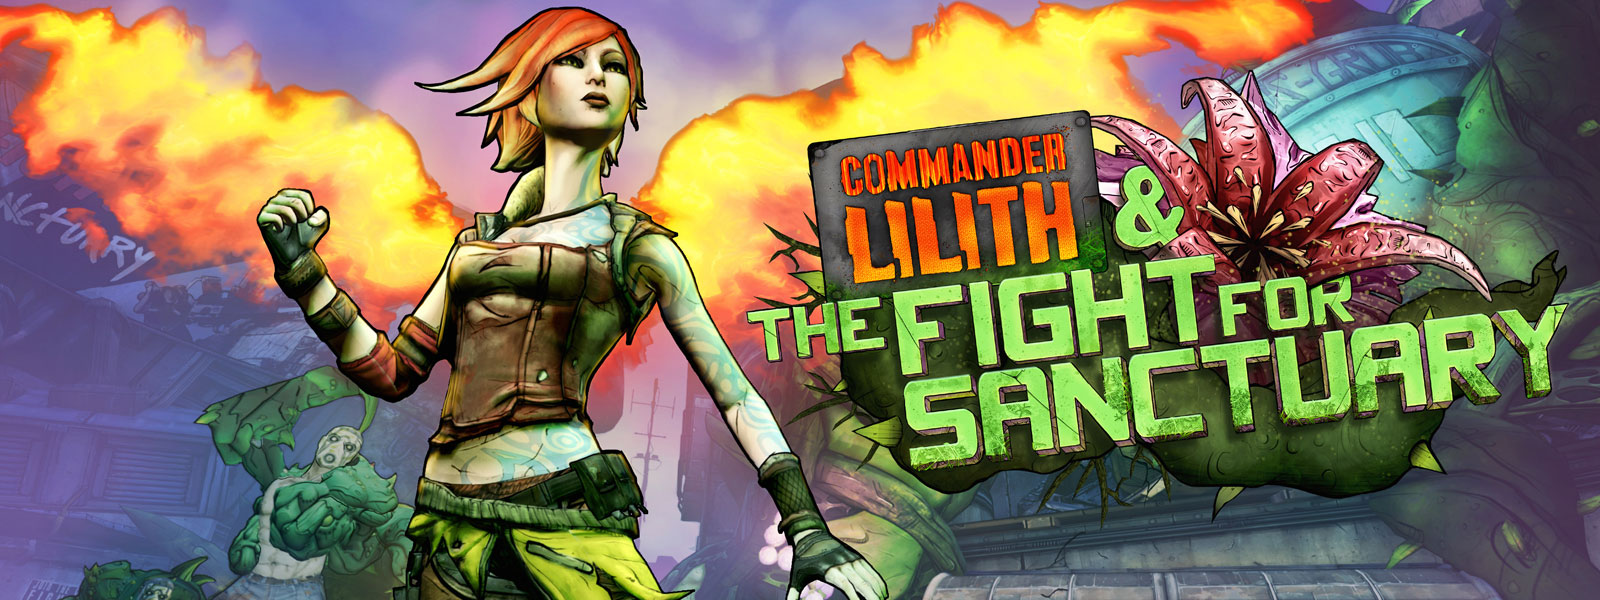 Commander Lilith and the Fight for Sanctuary logo, Lilith posing with fire behind her and a character with a green monster